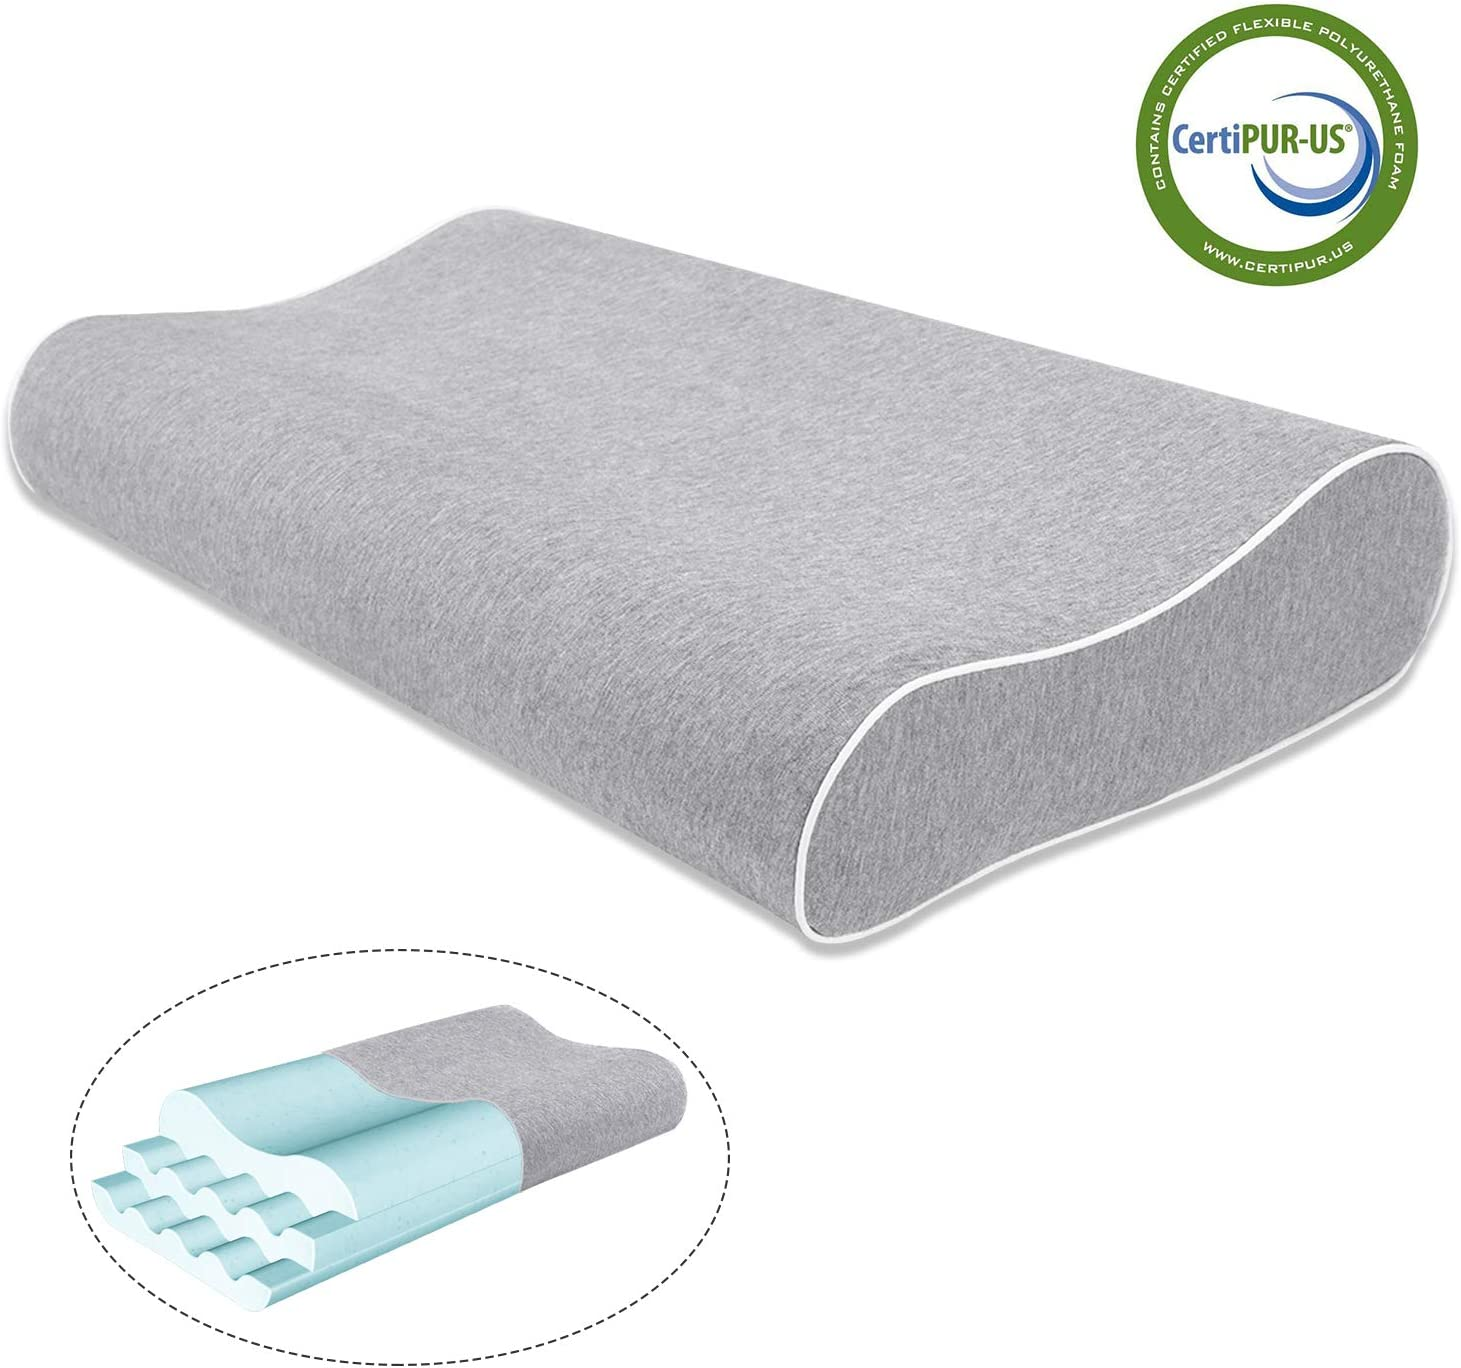 Mugetu Gel Infused Memory Foam Pillow Height Adjustable Cervical Pillow Supportive Contour Bed Pillow Neck Support for Back and Side Sleepers